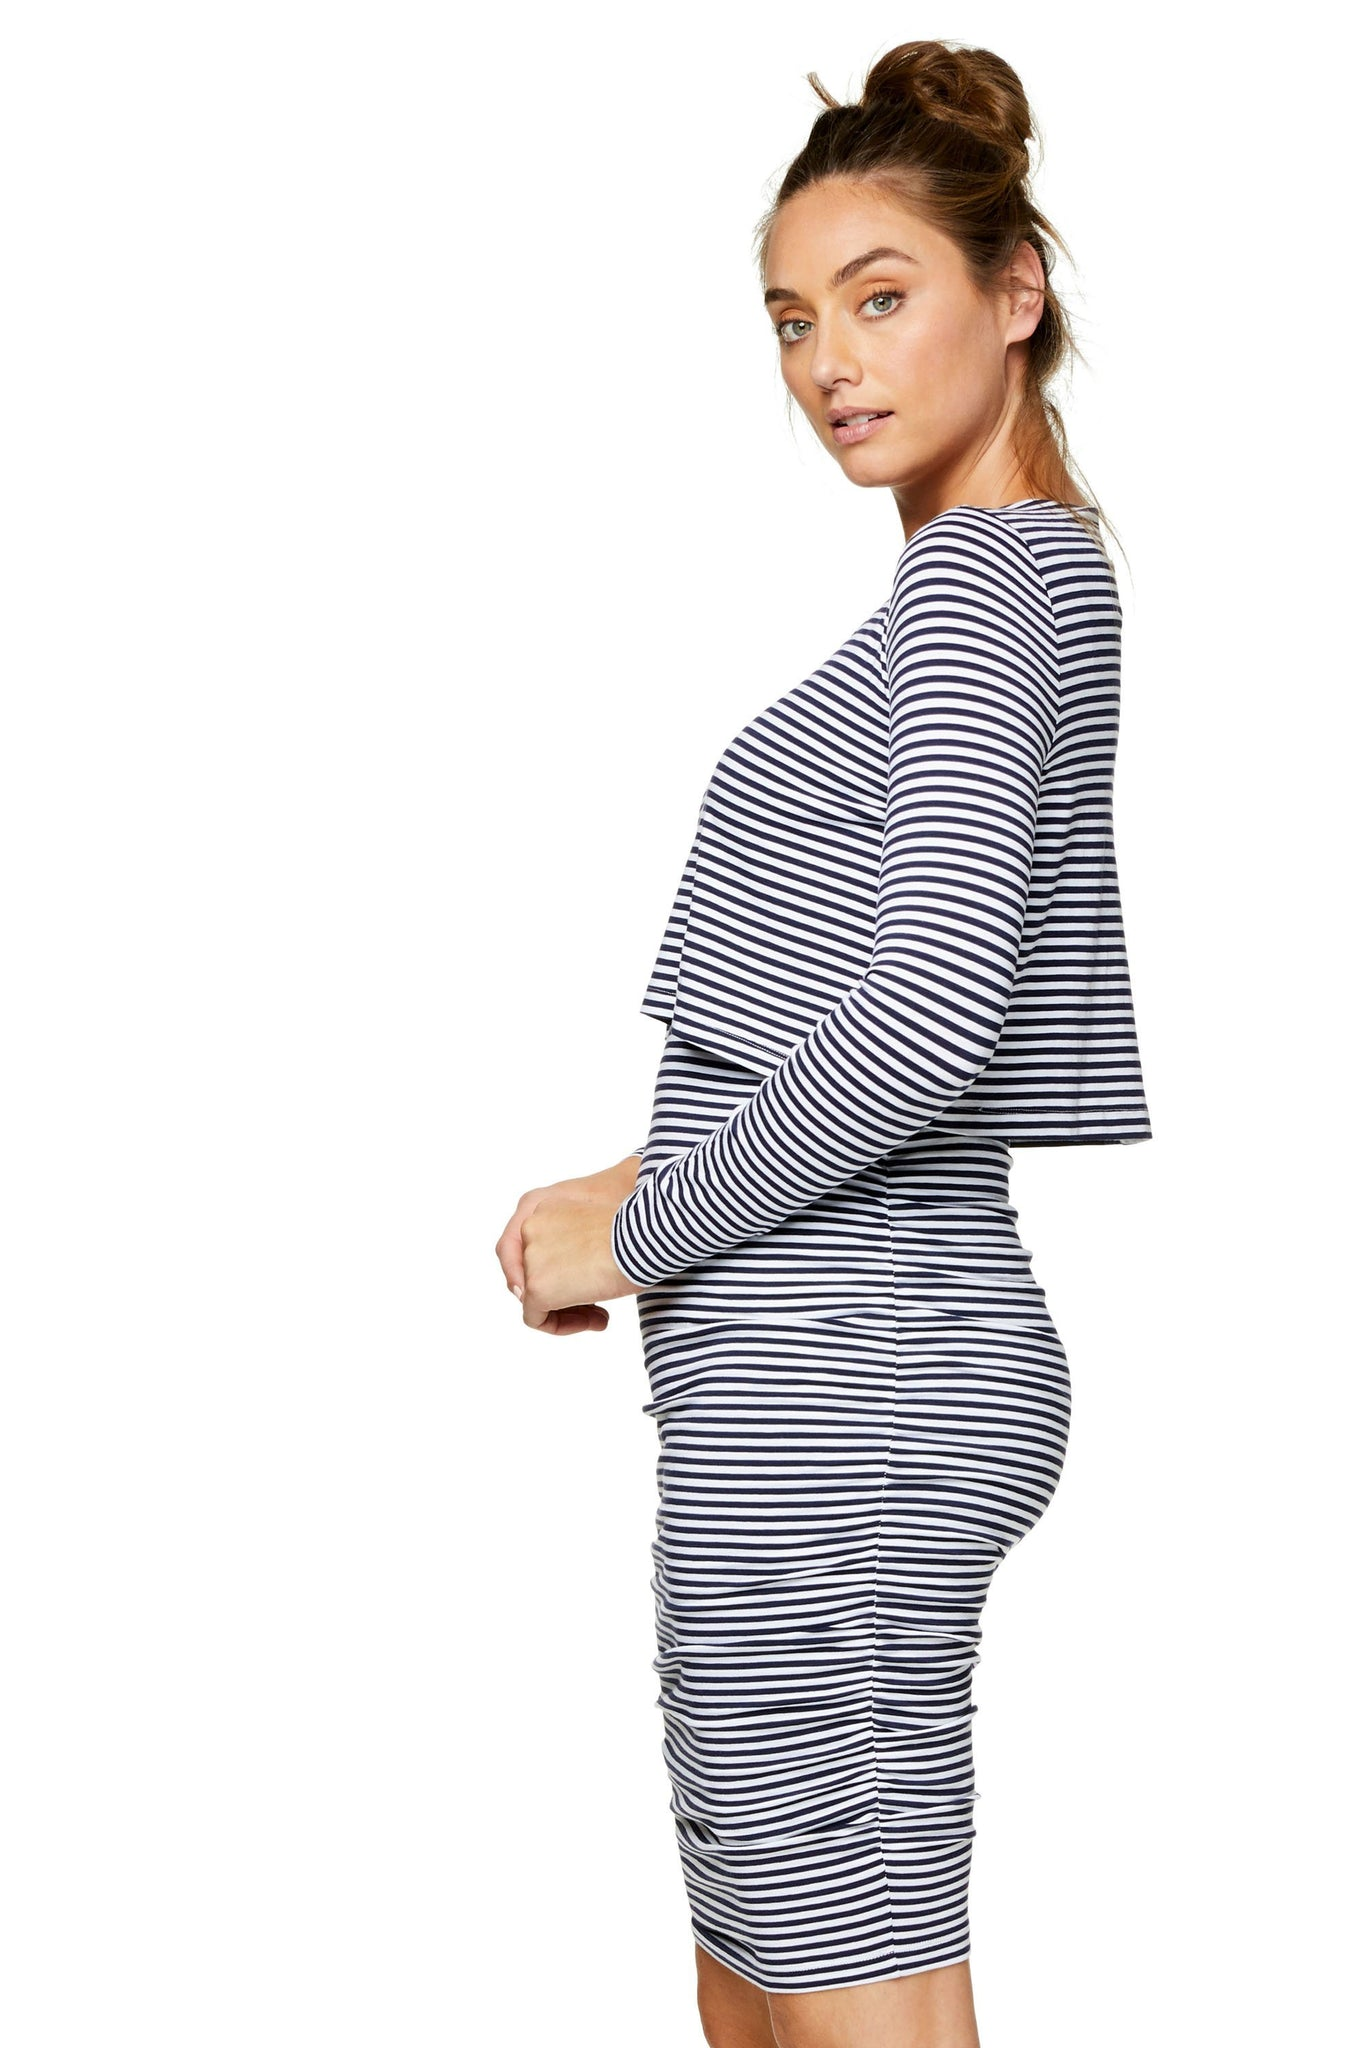 Nursing Dress - Stripe 6